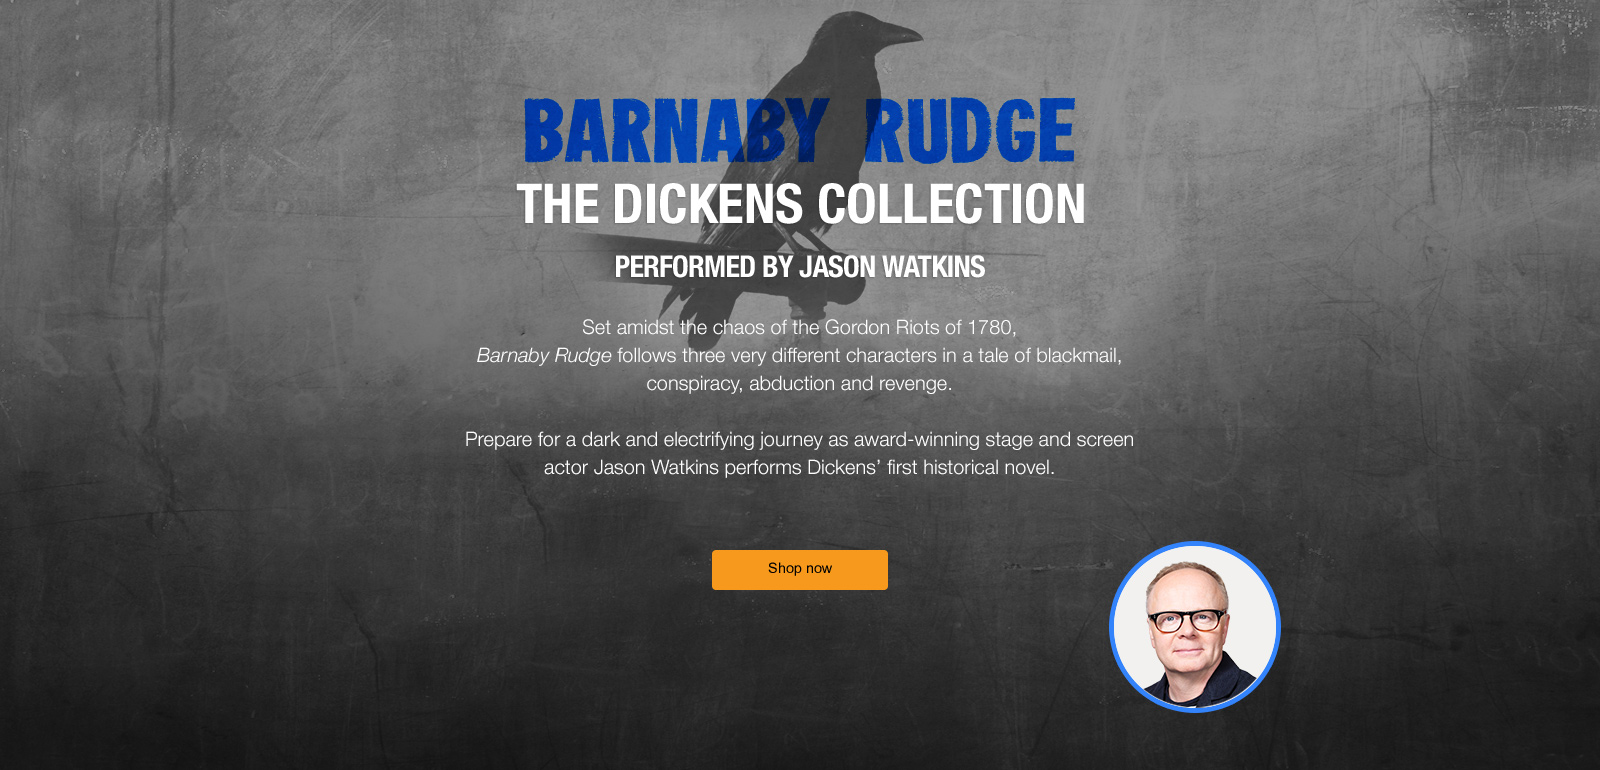 Barnaby Rudge performed by Jason Watkins. Shop now.